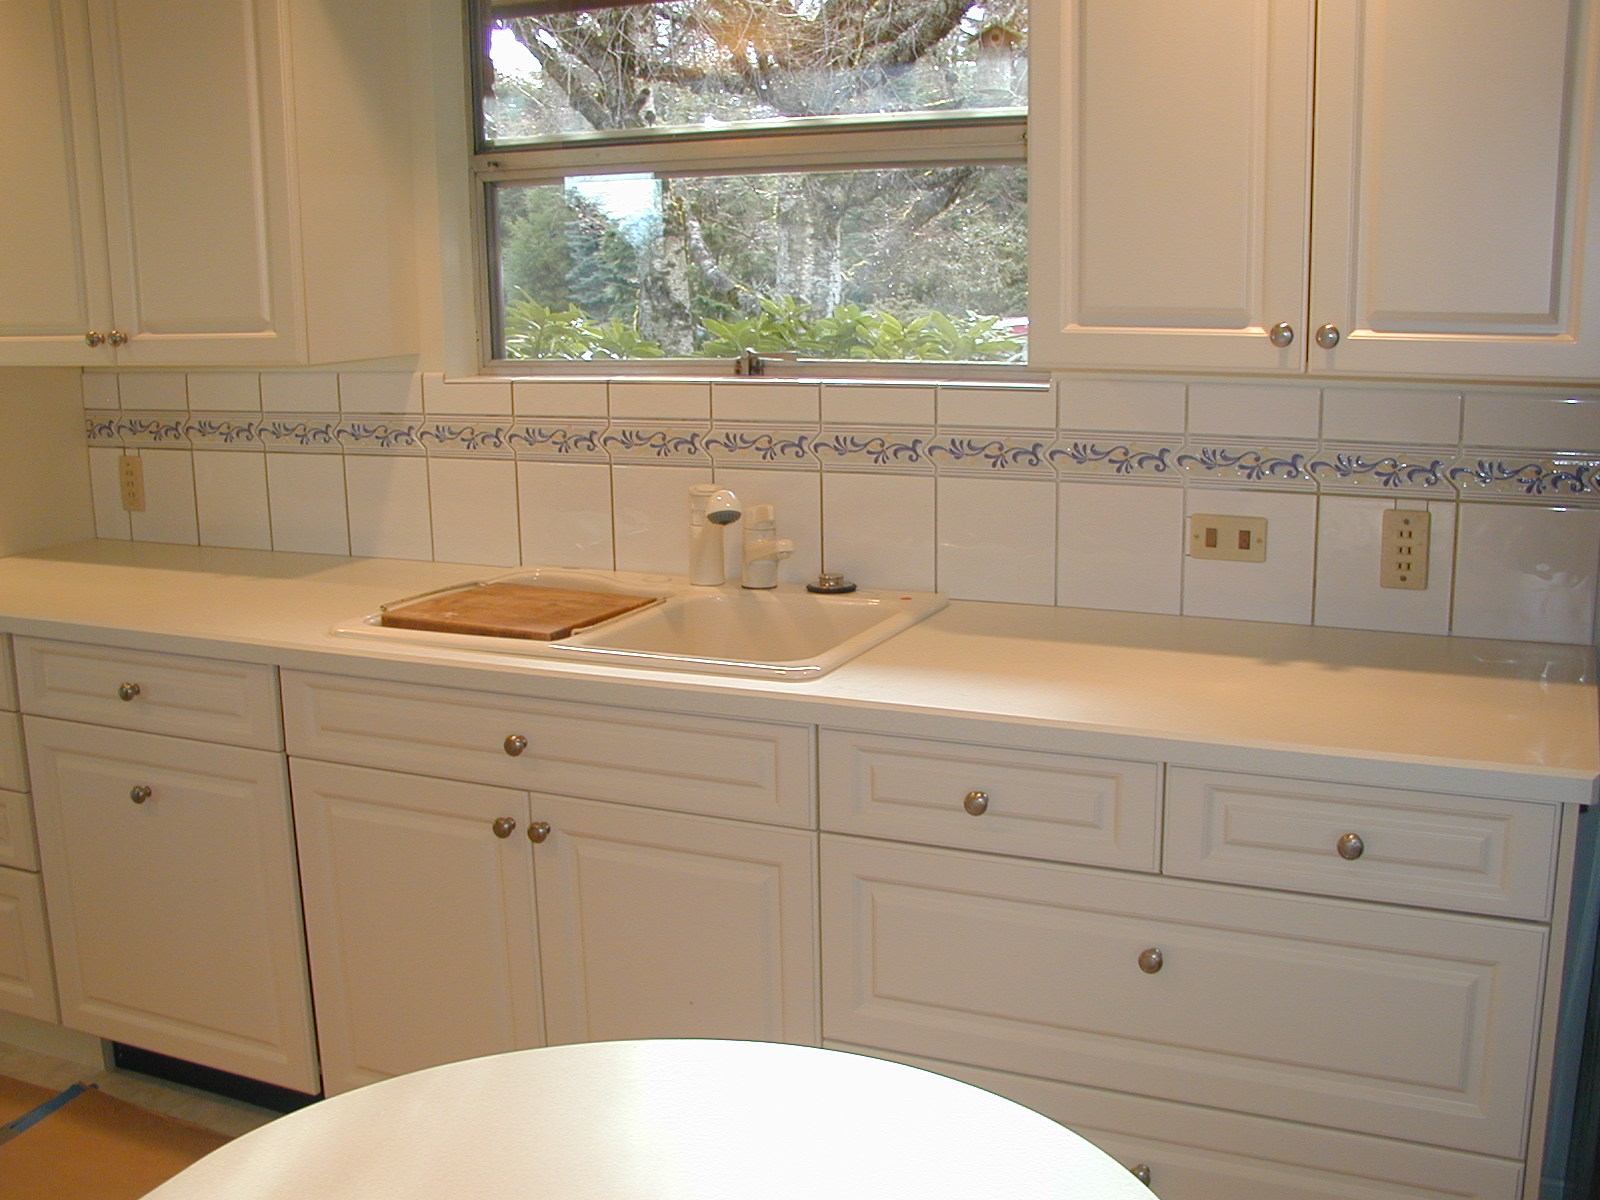 white tile kitchen countertops. Simple White Details Throughout White Tile Kitchen Countertops U